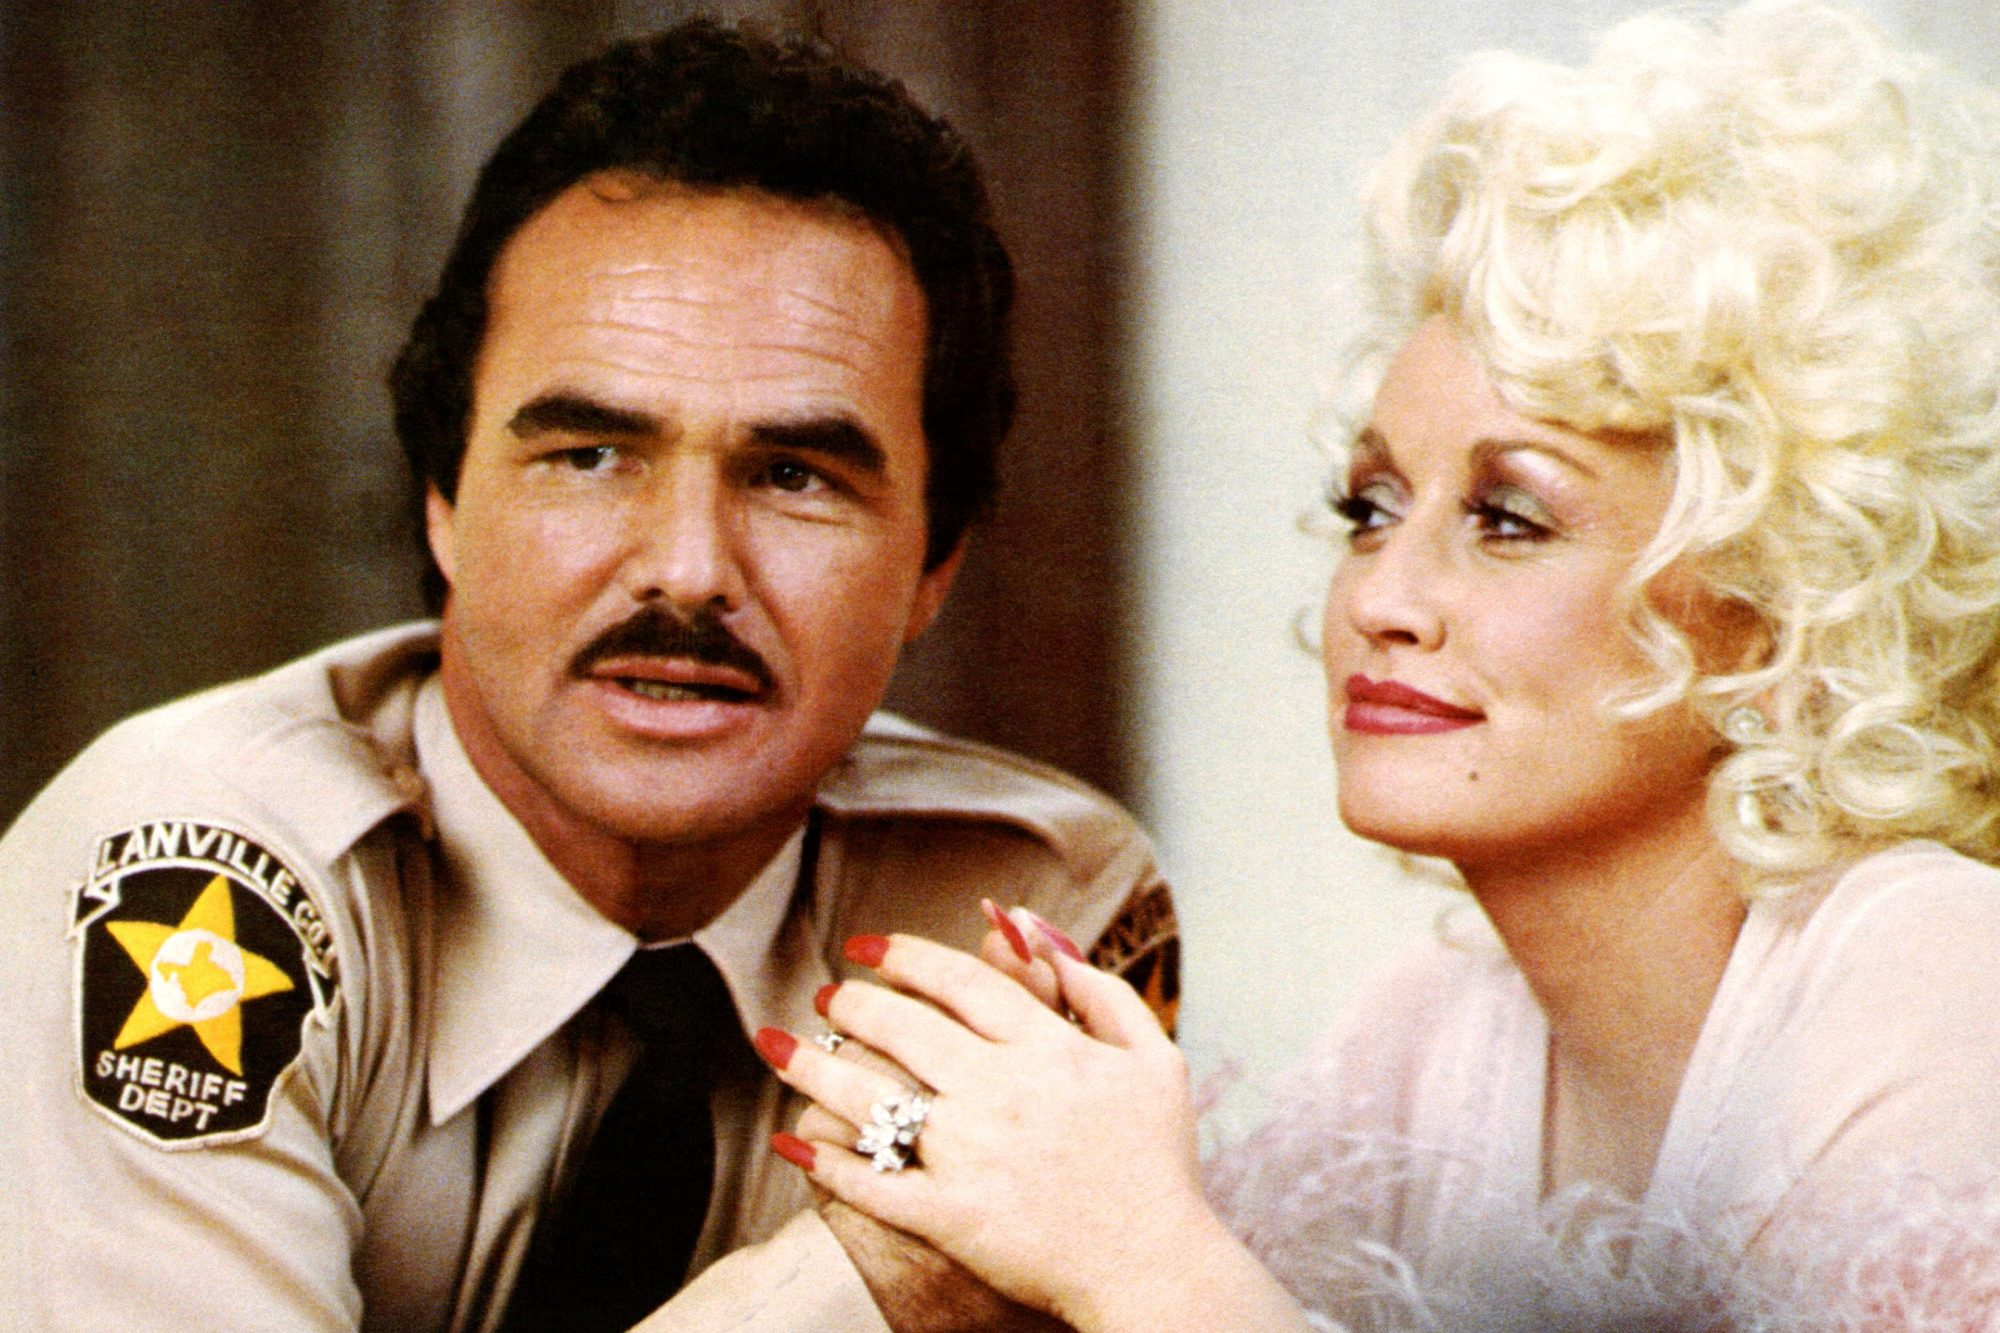 THE BEST LITTLE WHOREHOUSE IN TEXAS, from left: Burt Reynolds, Dolly Parton, 1982. ©Universal Pictur